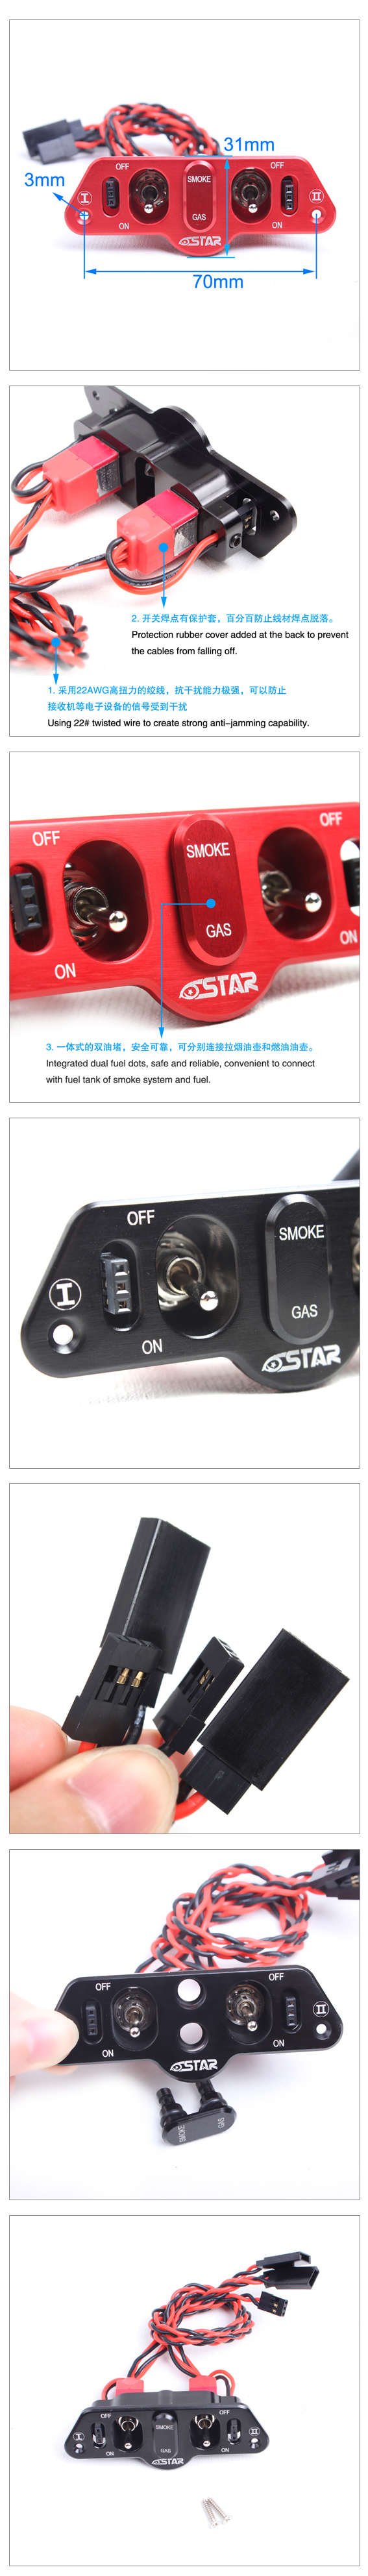 Heavy Duty Metal Dual Power Switch with Dual Fuel Dots for RC Airplane